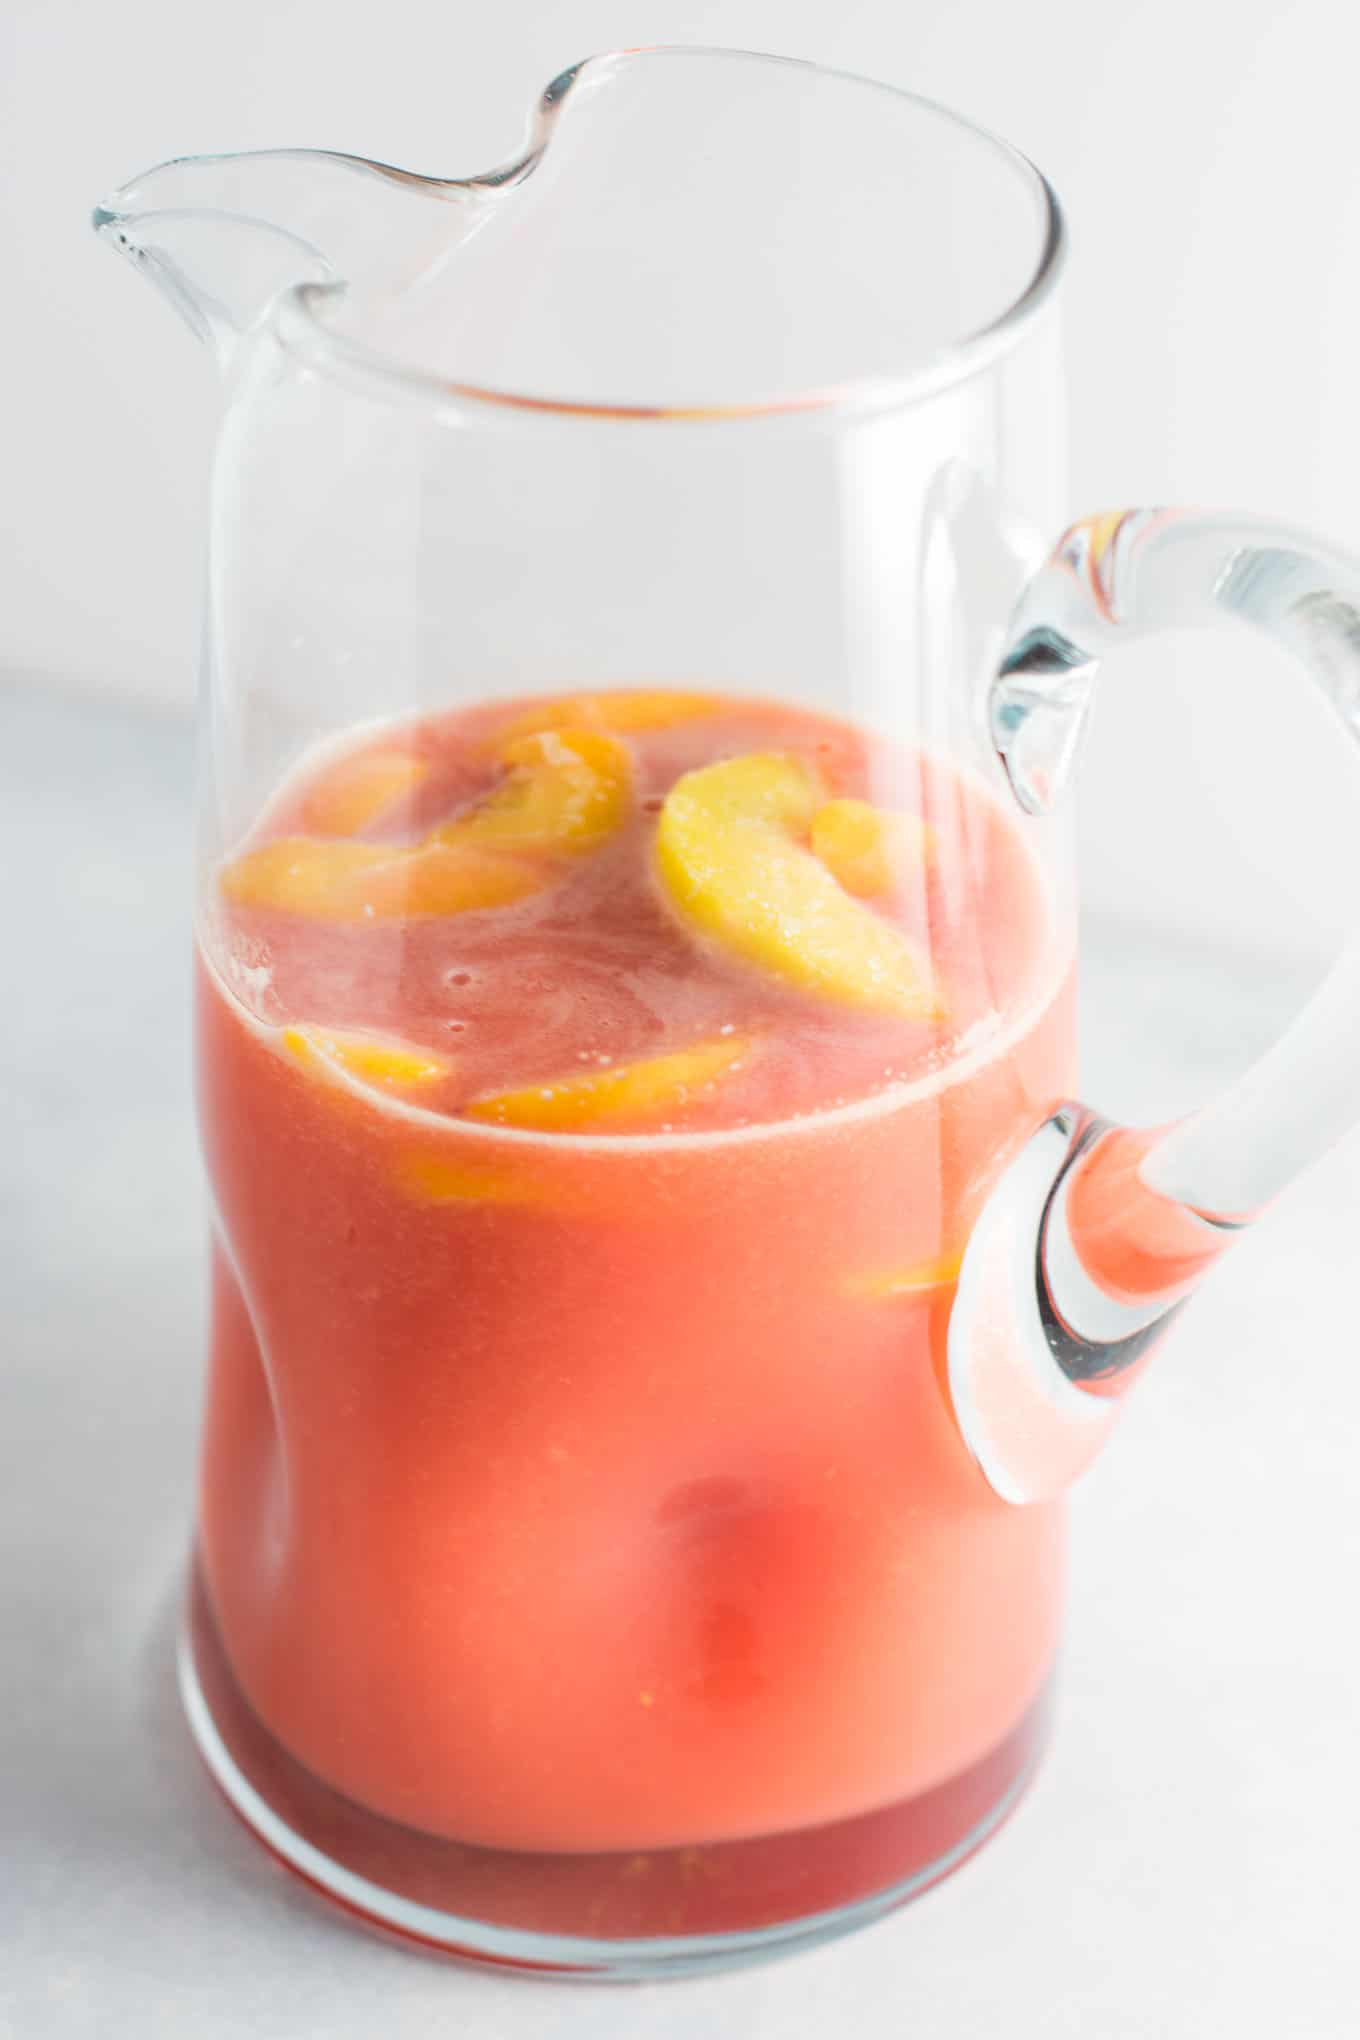 Fresh raspberry peach lemonade recipe made with lemons, raspberries, peaches, water, and maple syrup. Naturally sweetened and delicious!